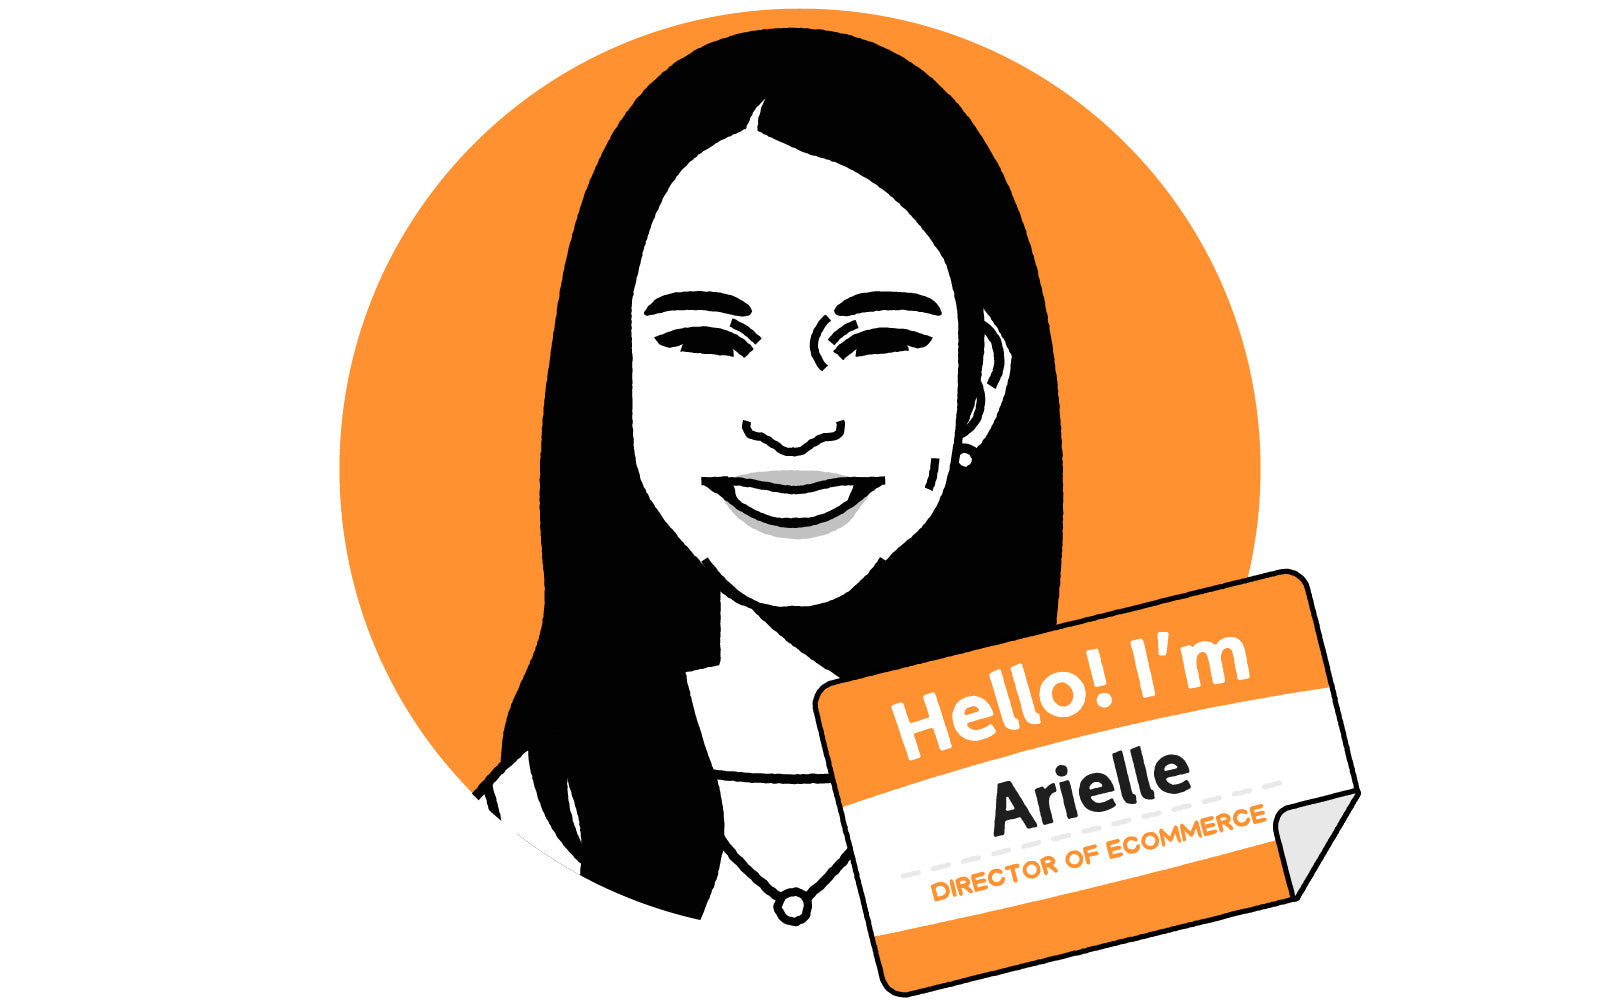 Illustrated avatar with nametag saying Hello! I'm Arielle, Director of eCommerce